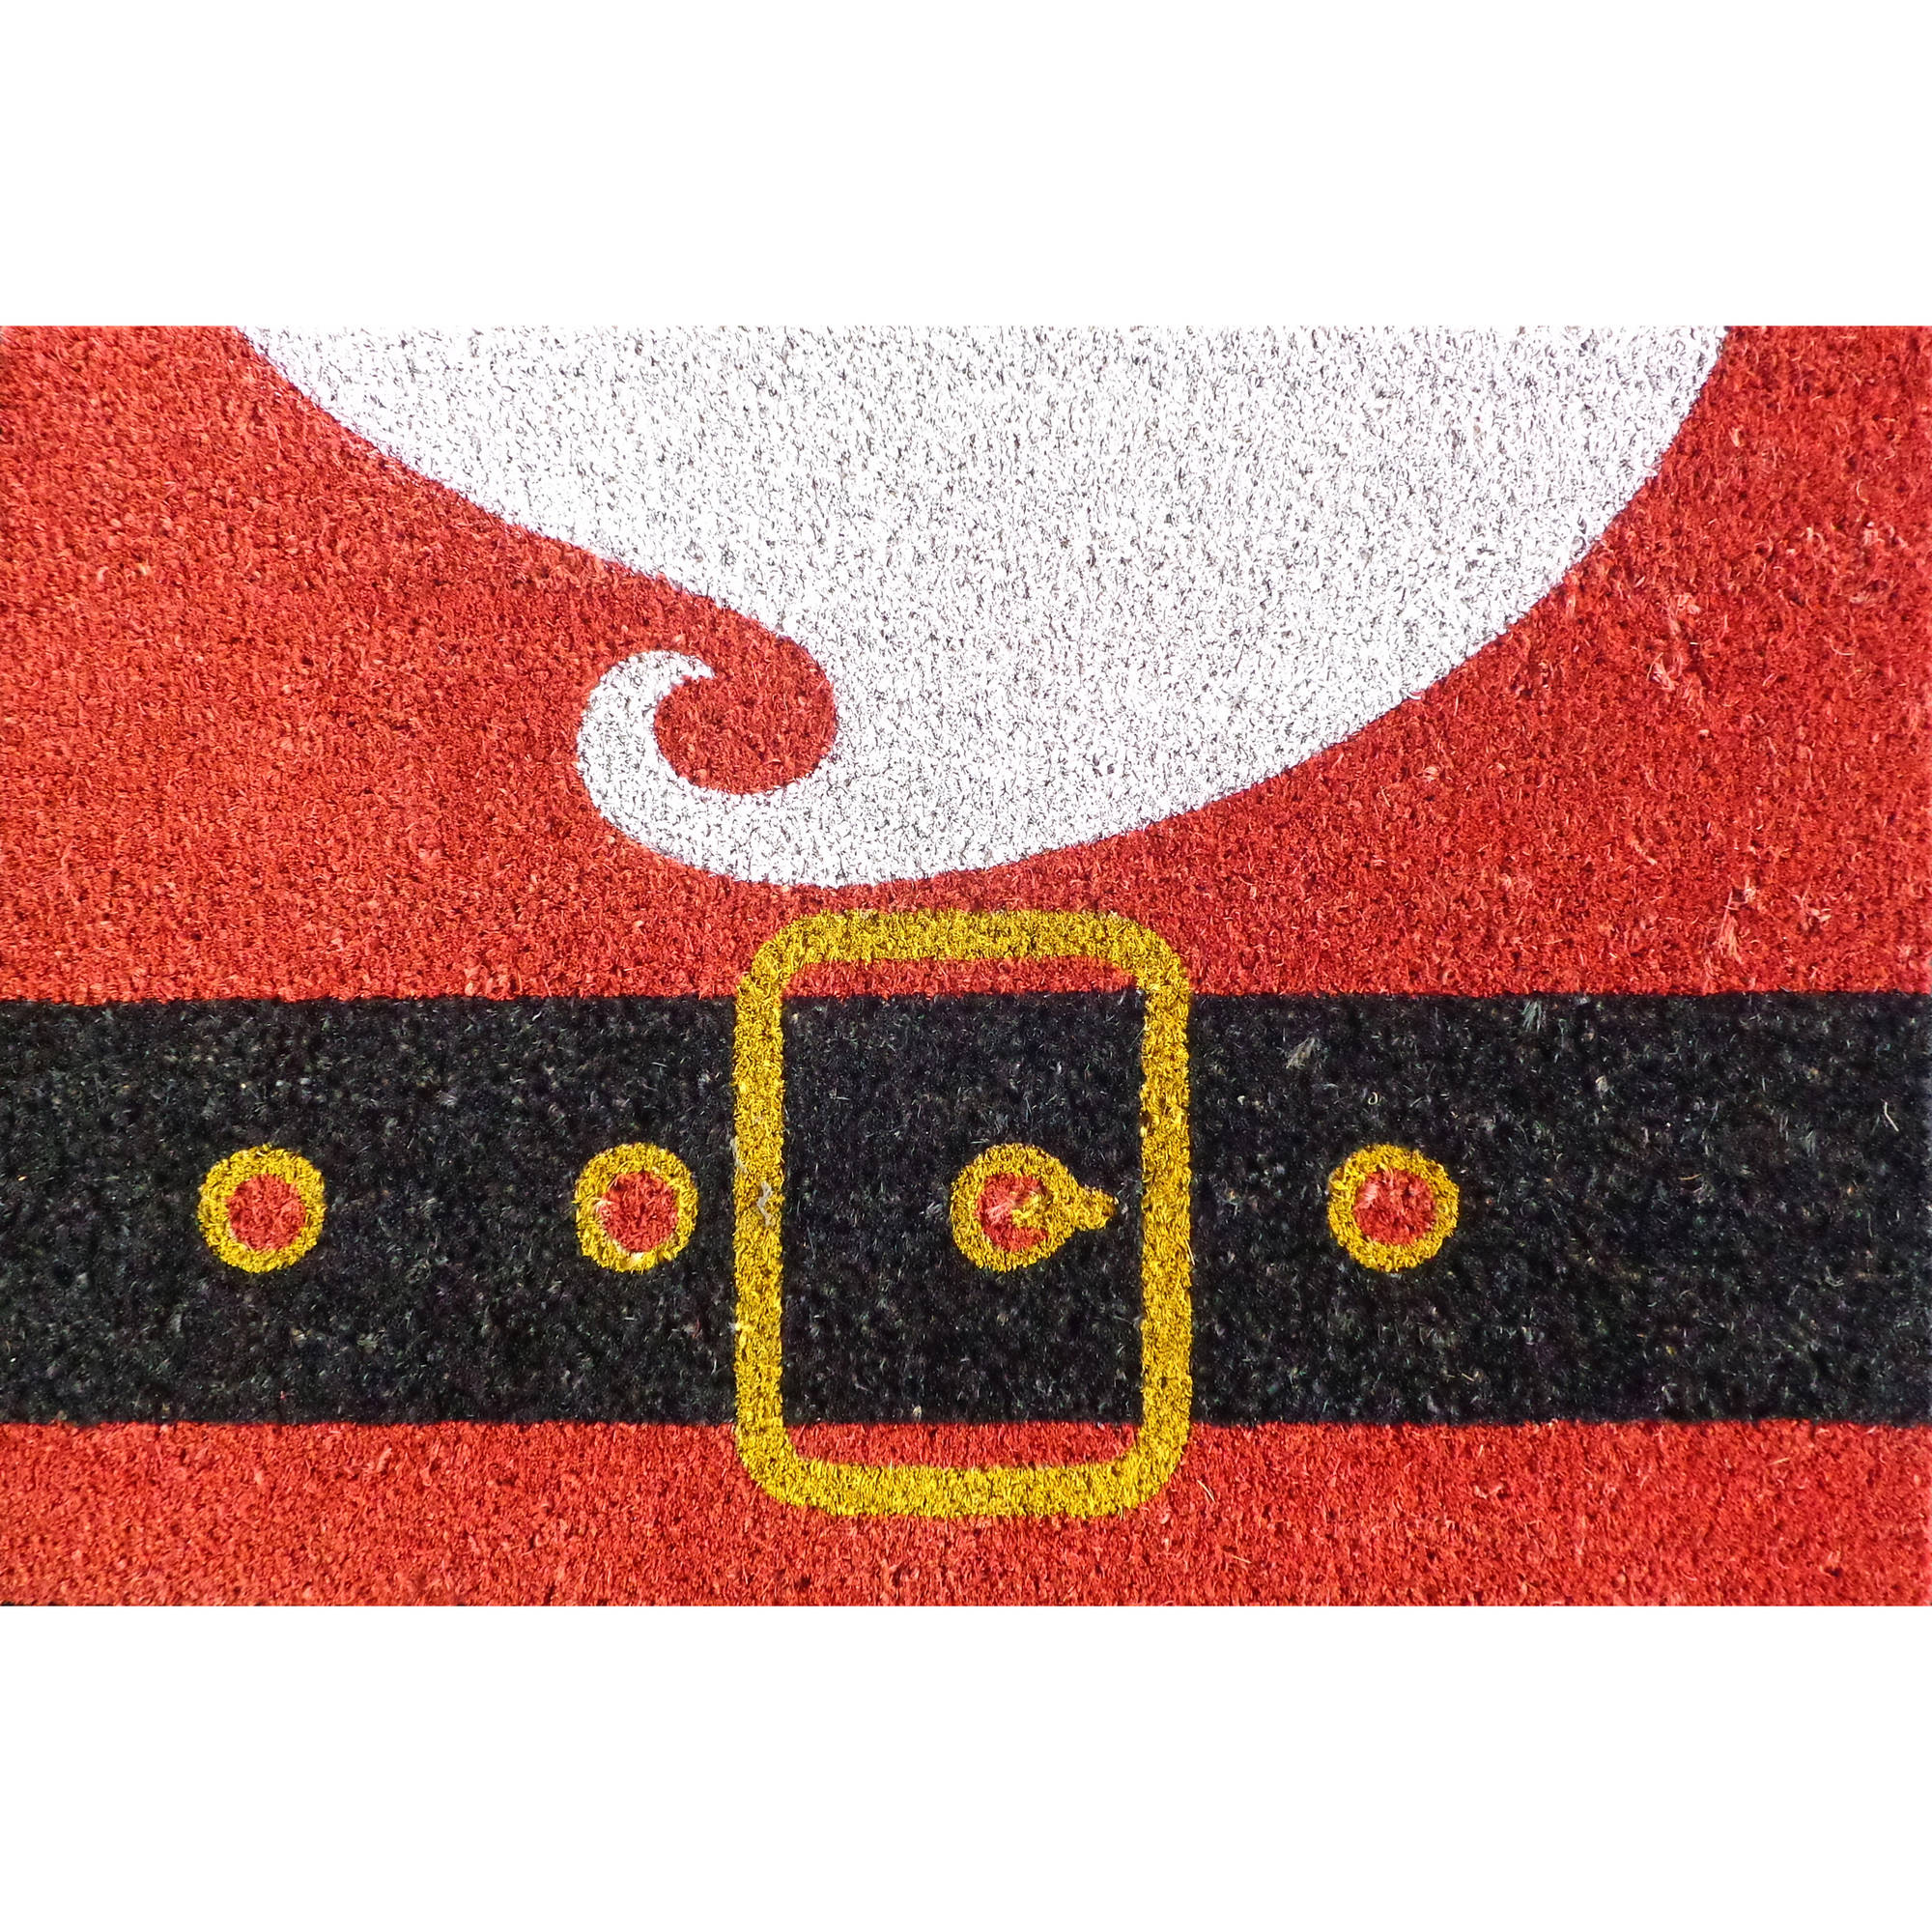 "Holiday Time 18"" x 27"" Santa Doormat Coir"